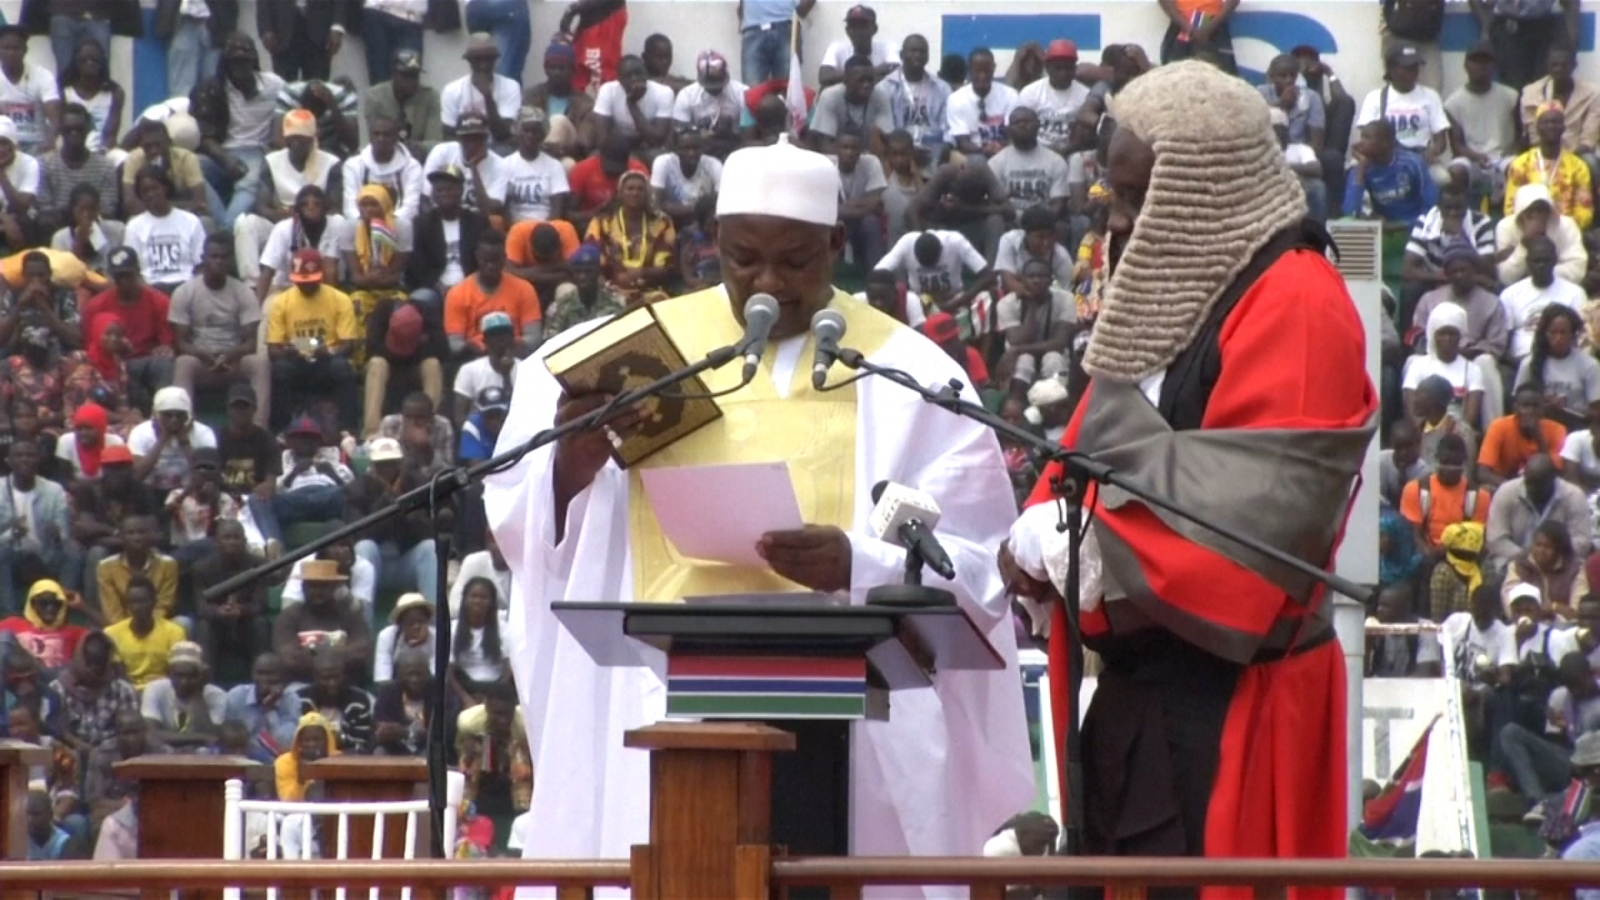 The Gambia President Adama Barrow